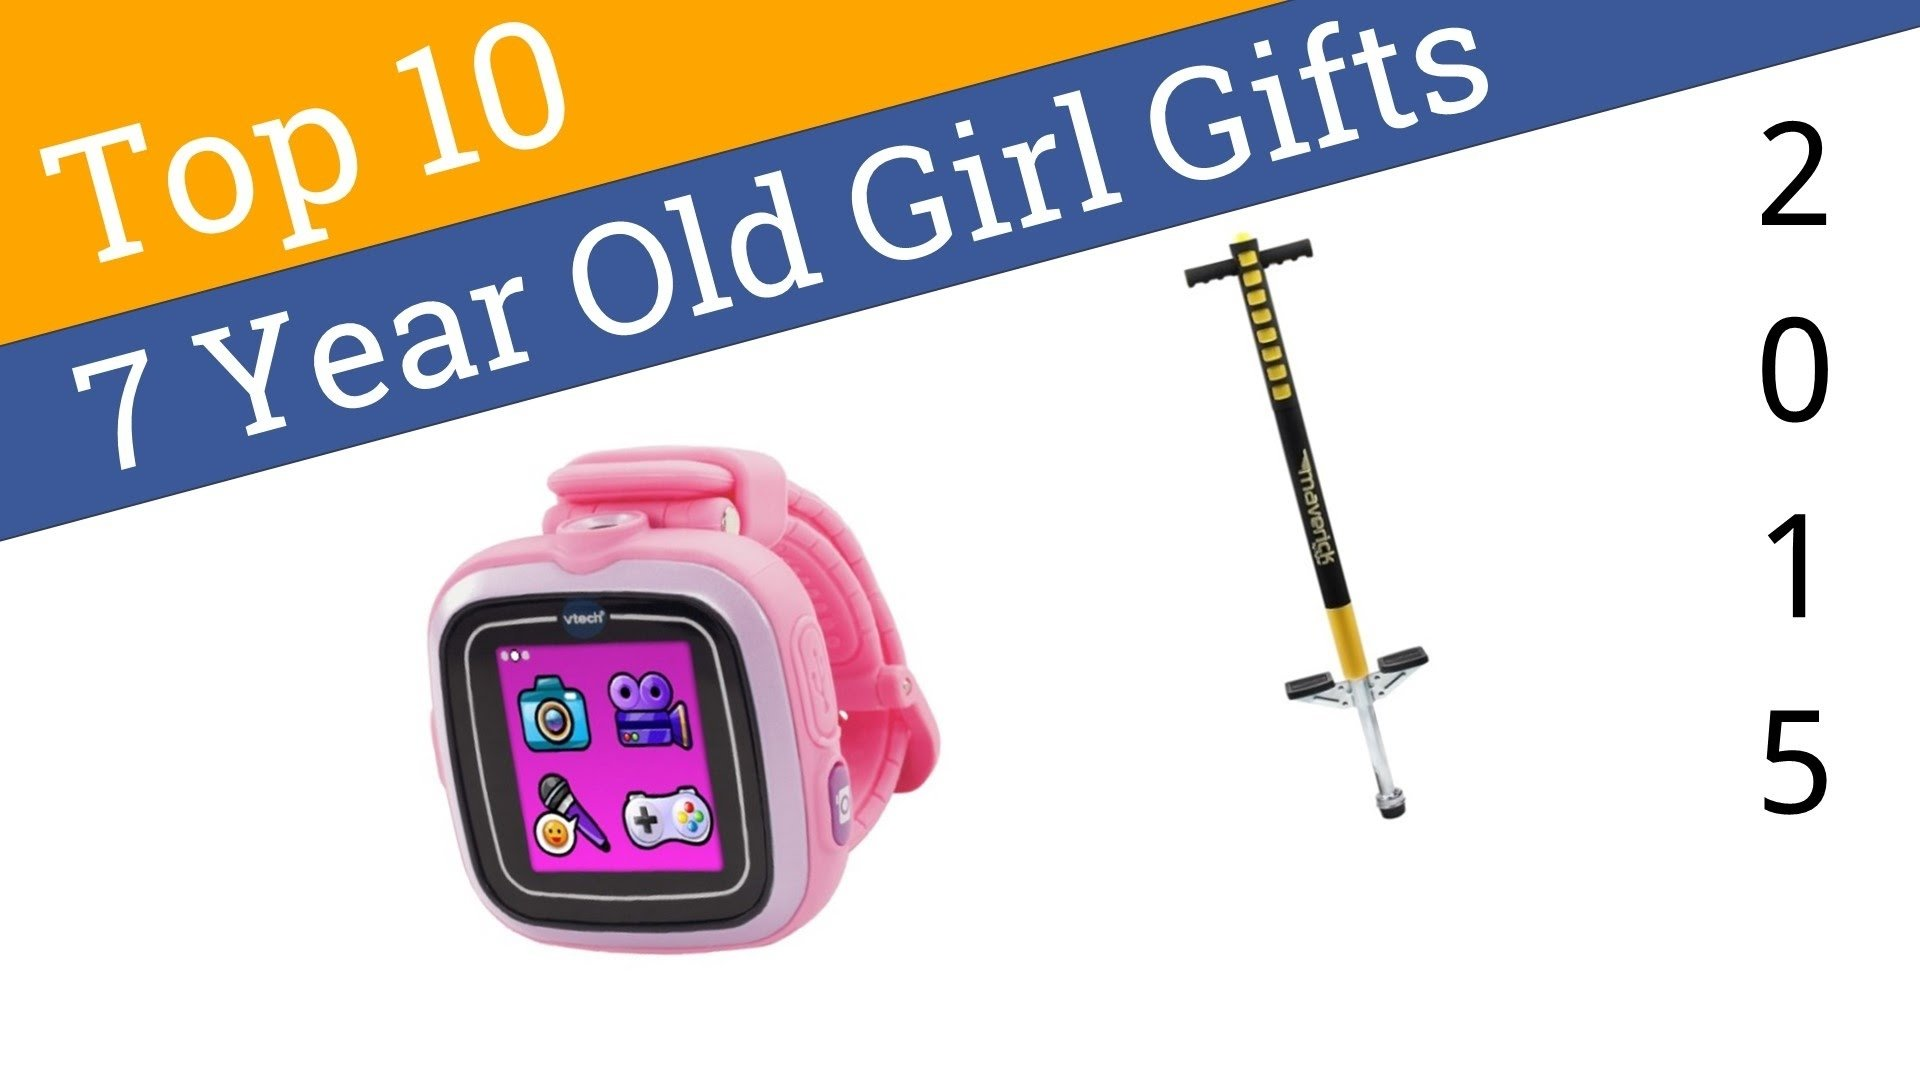 10 best 7 year old girl gifts 2015 - youtube